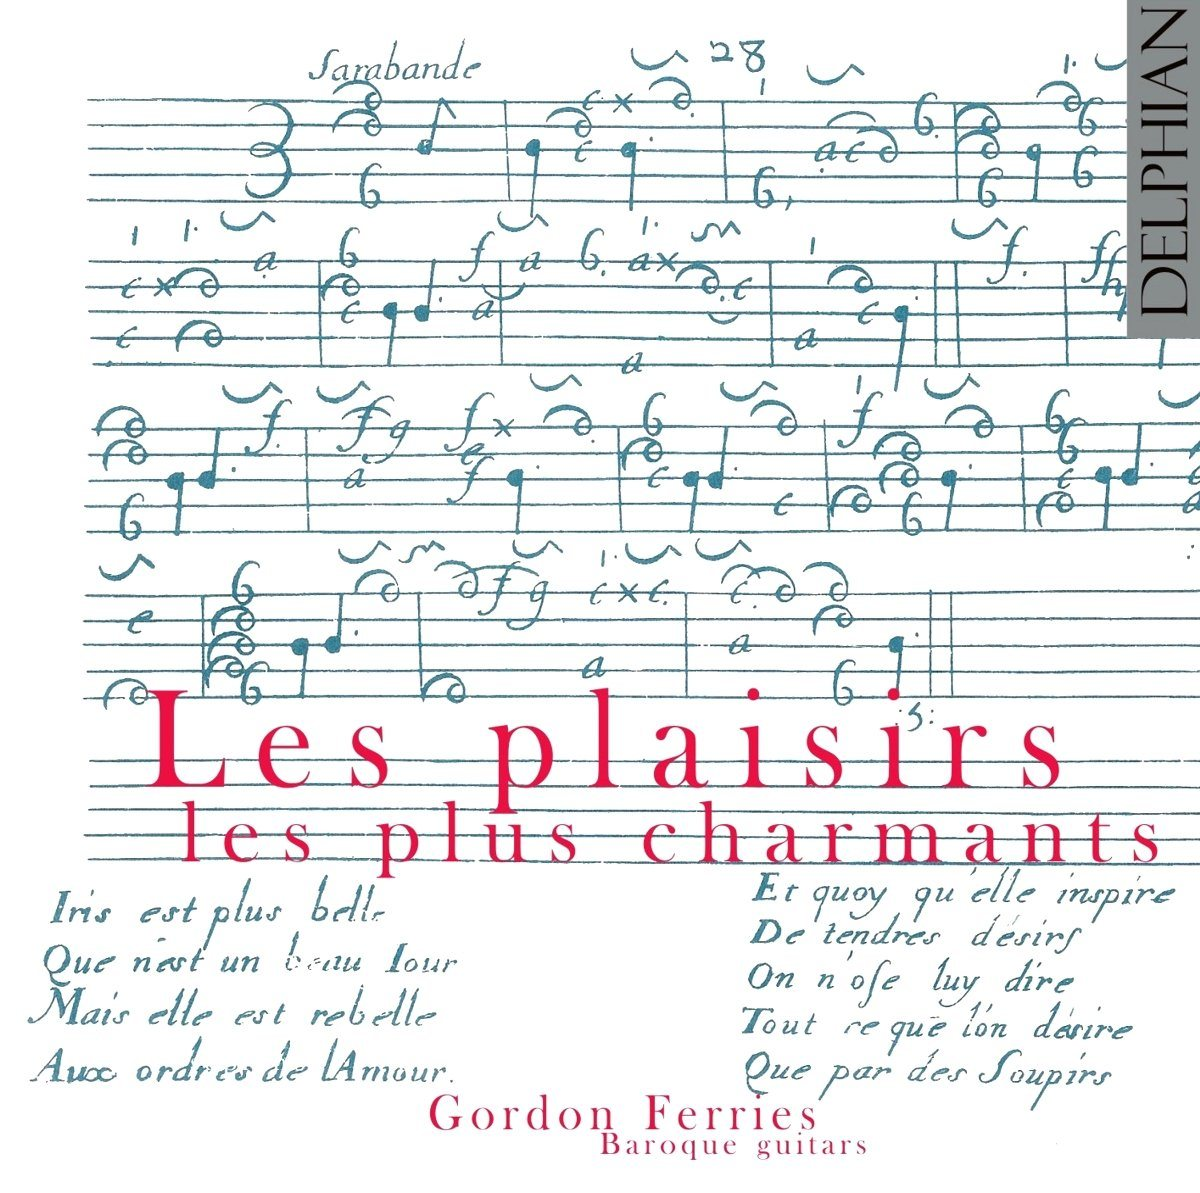 Les plaisirs les plus charmants CD Delphian Records